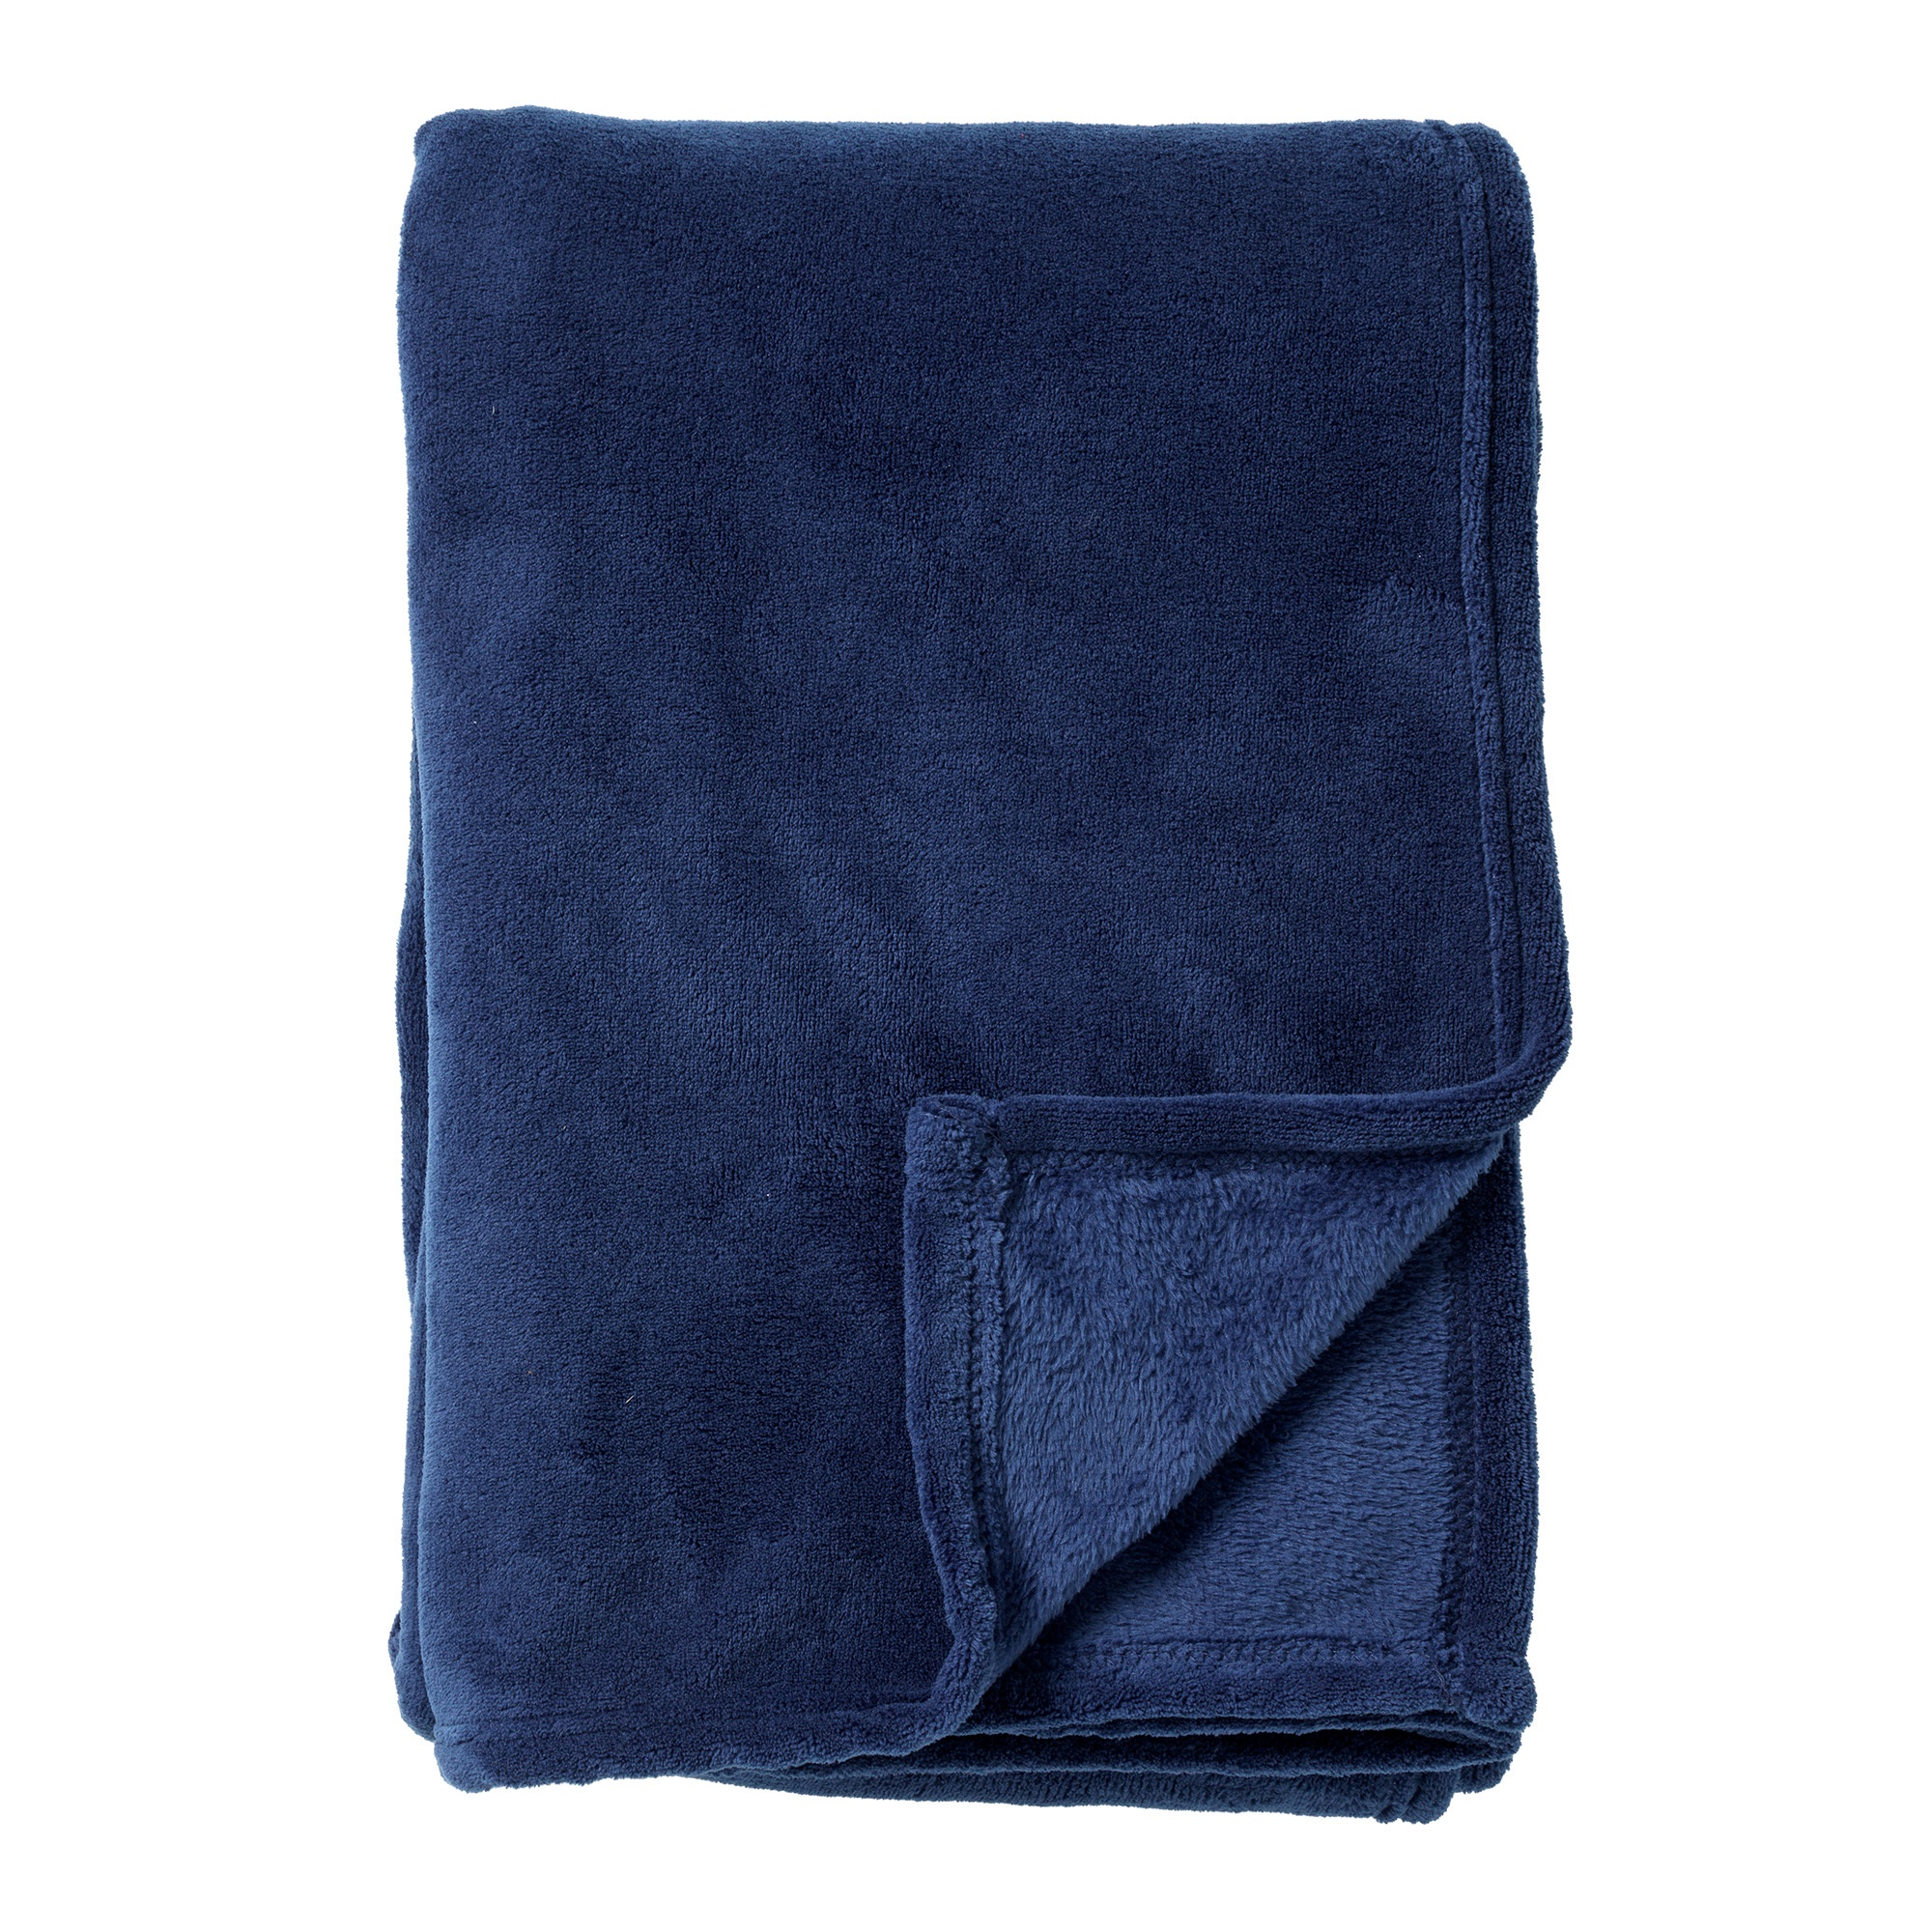 HARVEY - Plaid van fleece Insignia Blue 150x200 cm